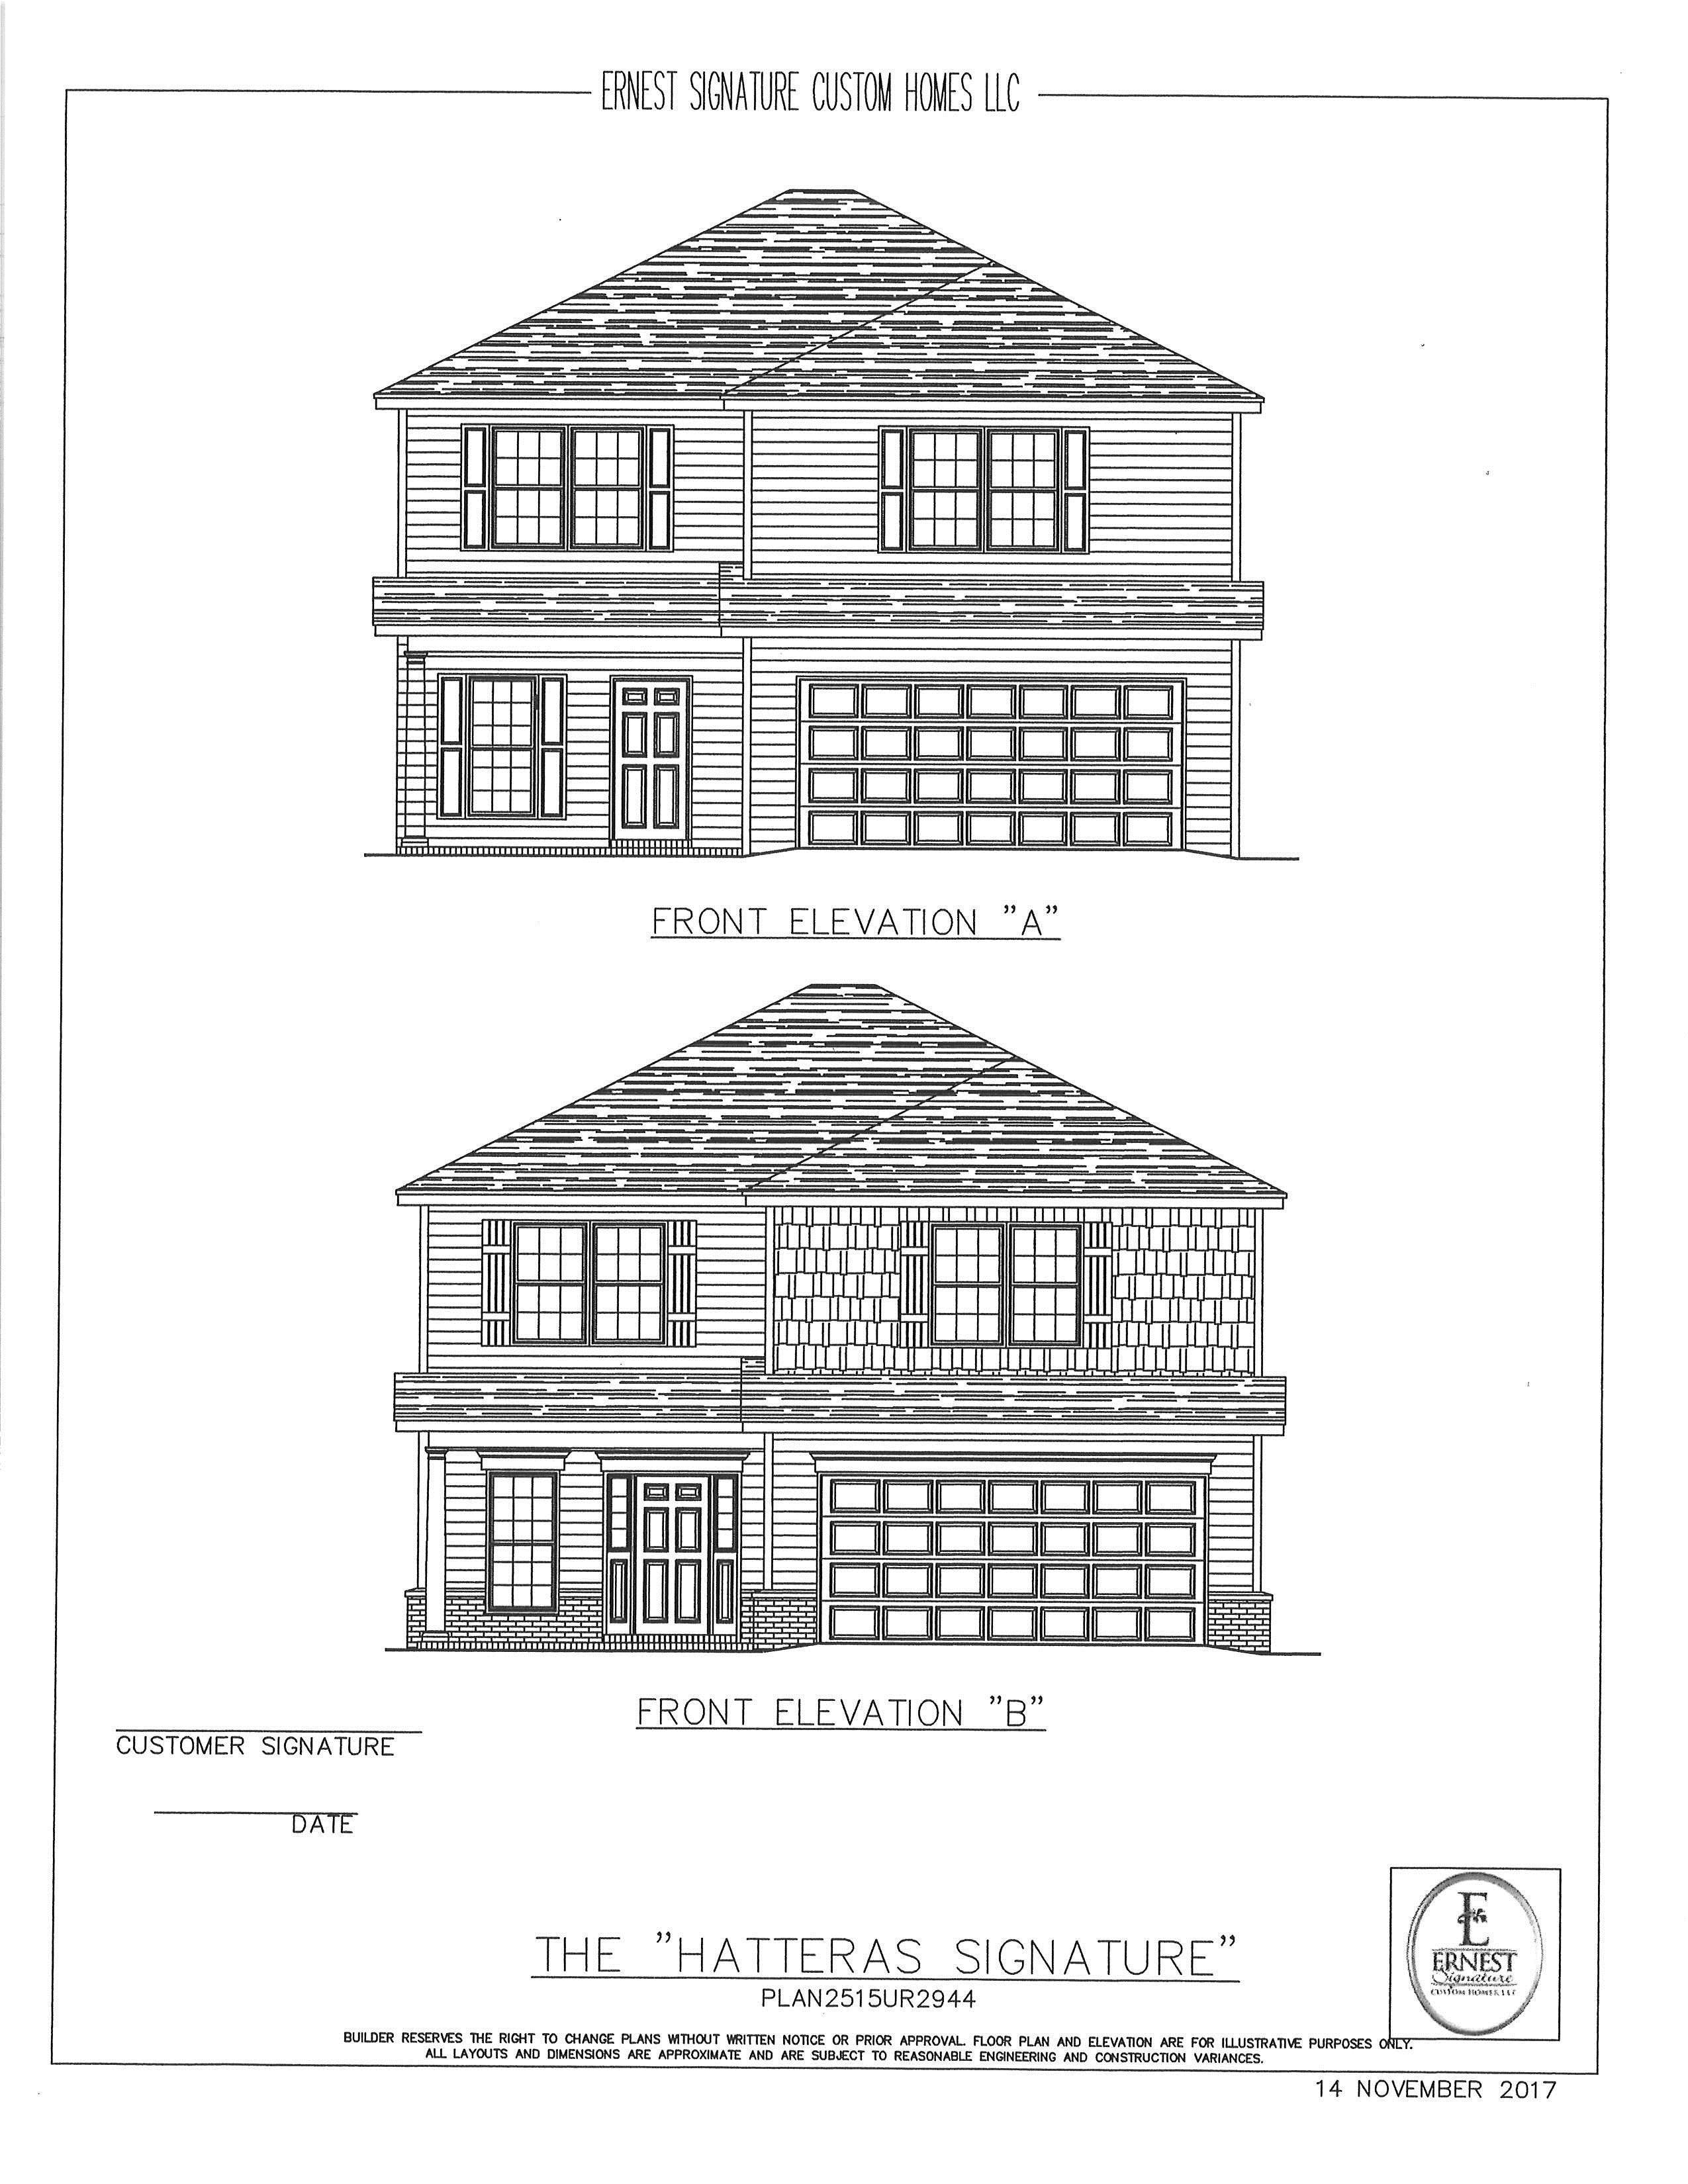 Dunham Marsh in Richmond Hill, GA, New Homes & Floor Plans by Ernest on minnesota house plan, hudson house plan, norwood house plan, morris house plan, riverton house plan, atlantic beach house plan, lafayette house plan, hartwell house plan, asheville house plan, giselle house plan, mckinley house plan, bellamy house plan, patterson house plan, mayfield house plan, binghamton house plan, augusta house plan, brisbane house plan, catawba house plan, maple house plan, oakley house plan,